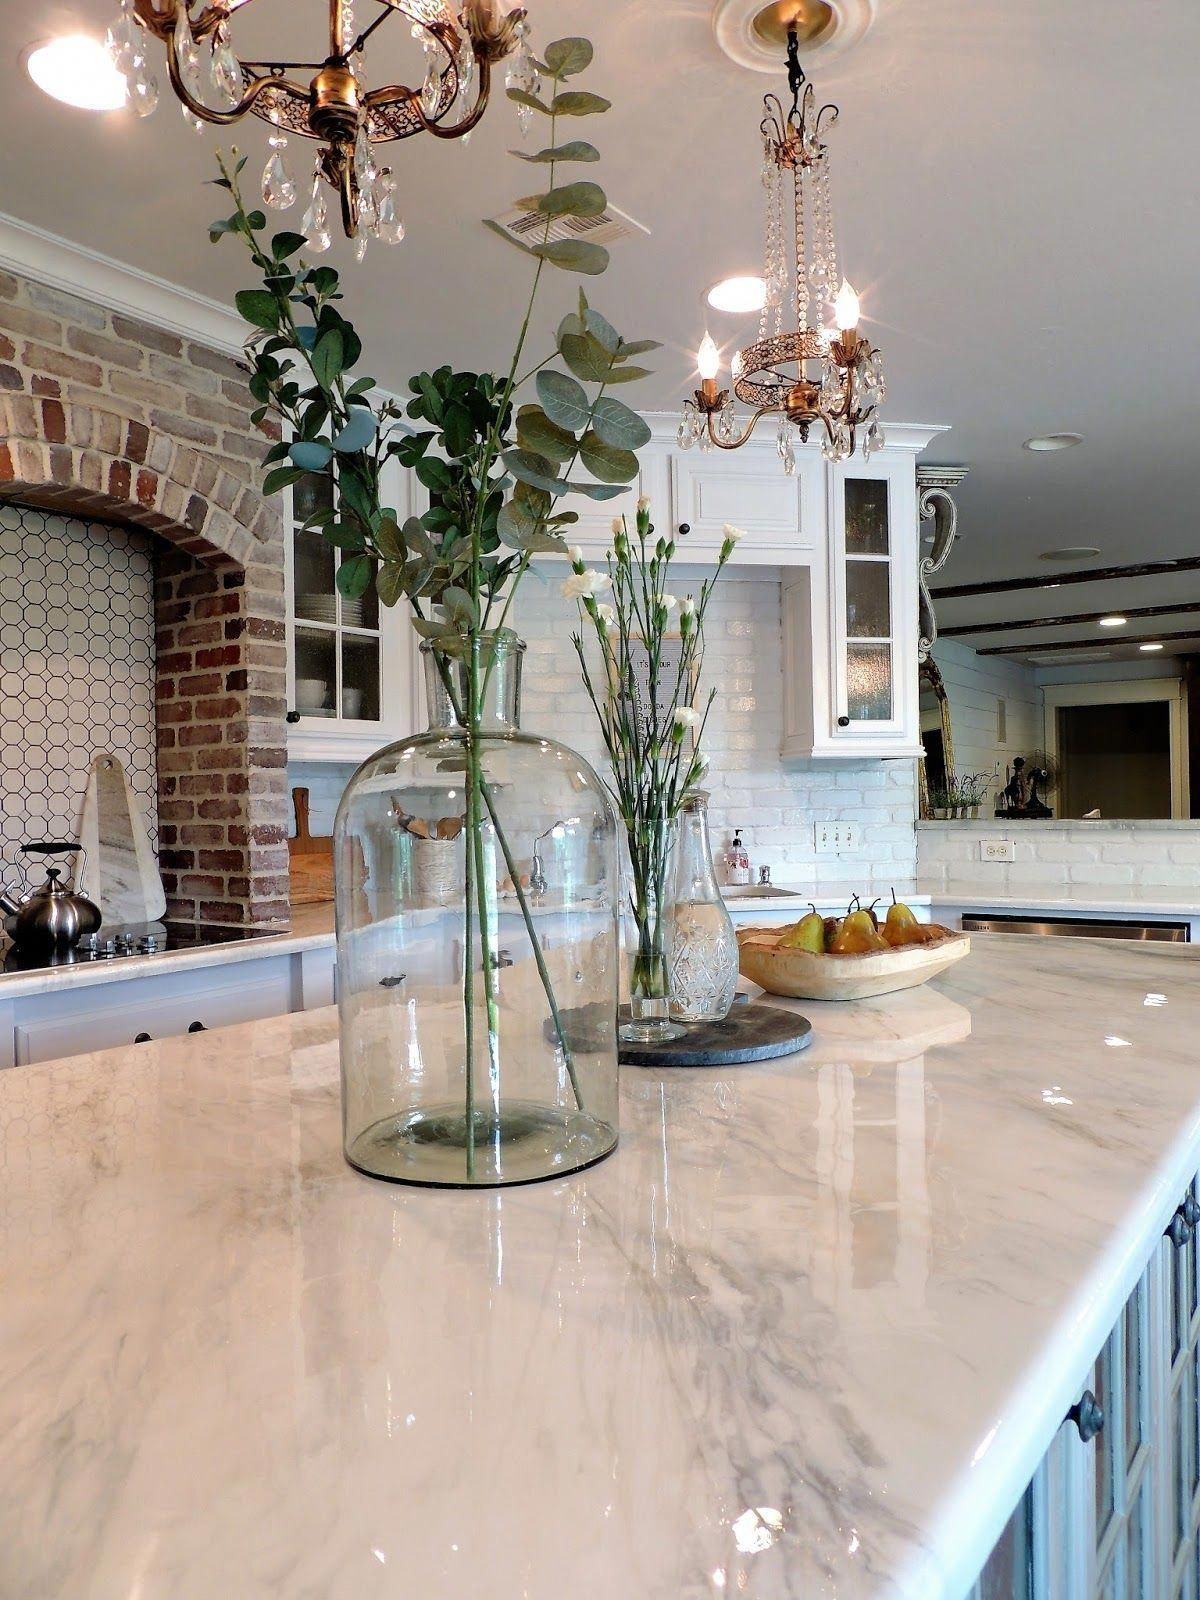 Remodeling Your Kitchen Is A Big Project With A Lot Of Variables